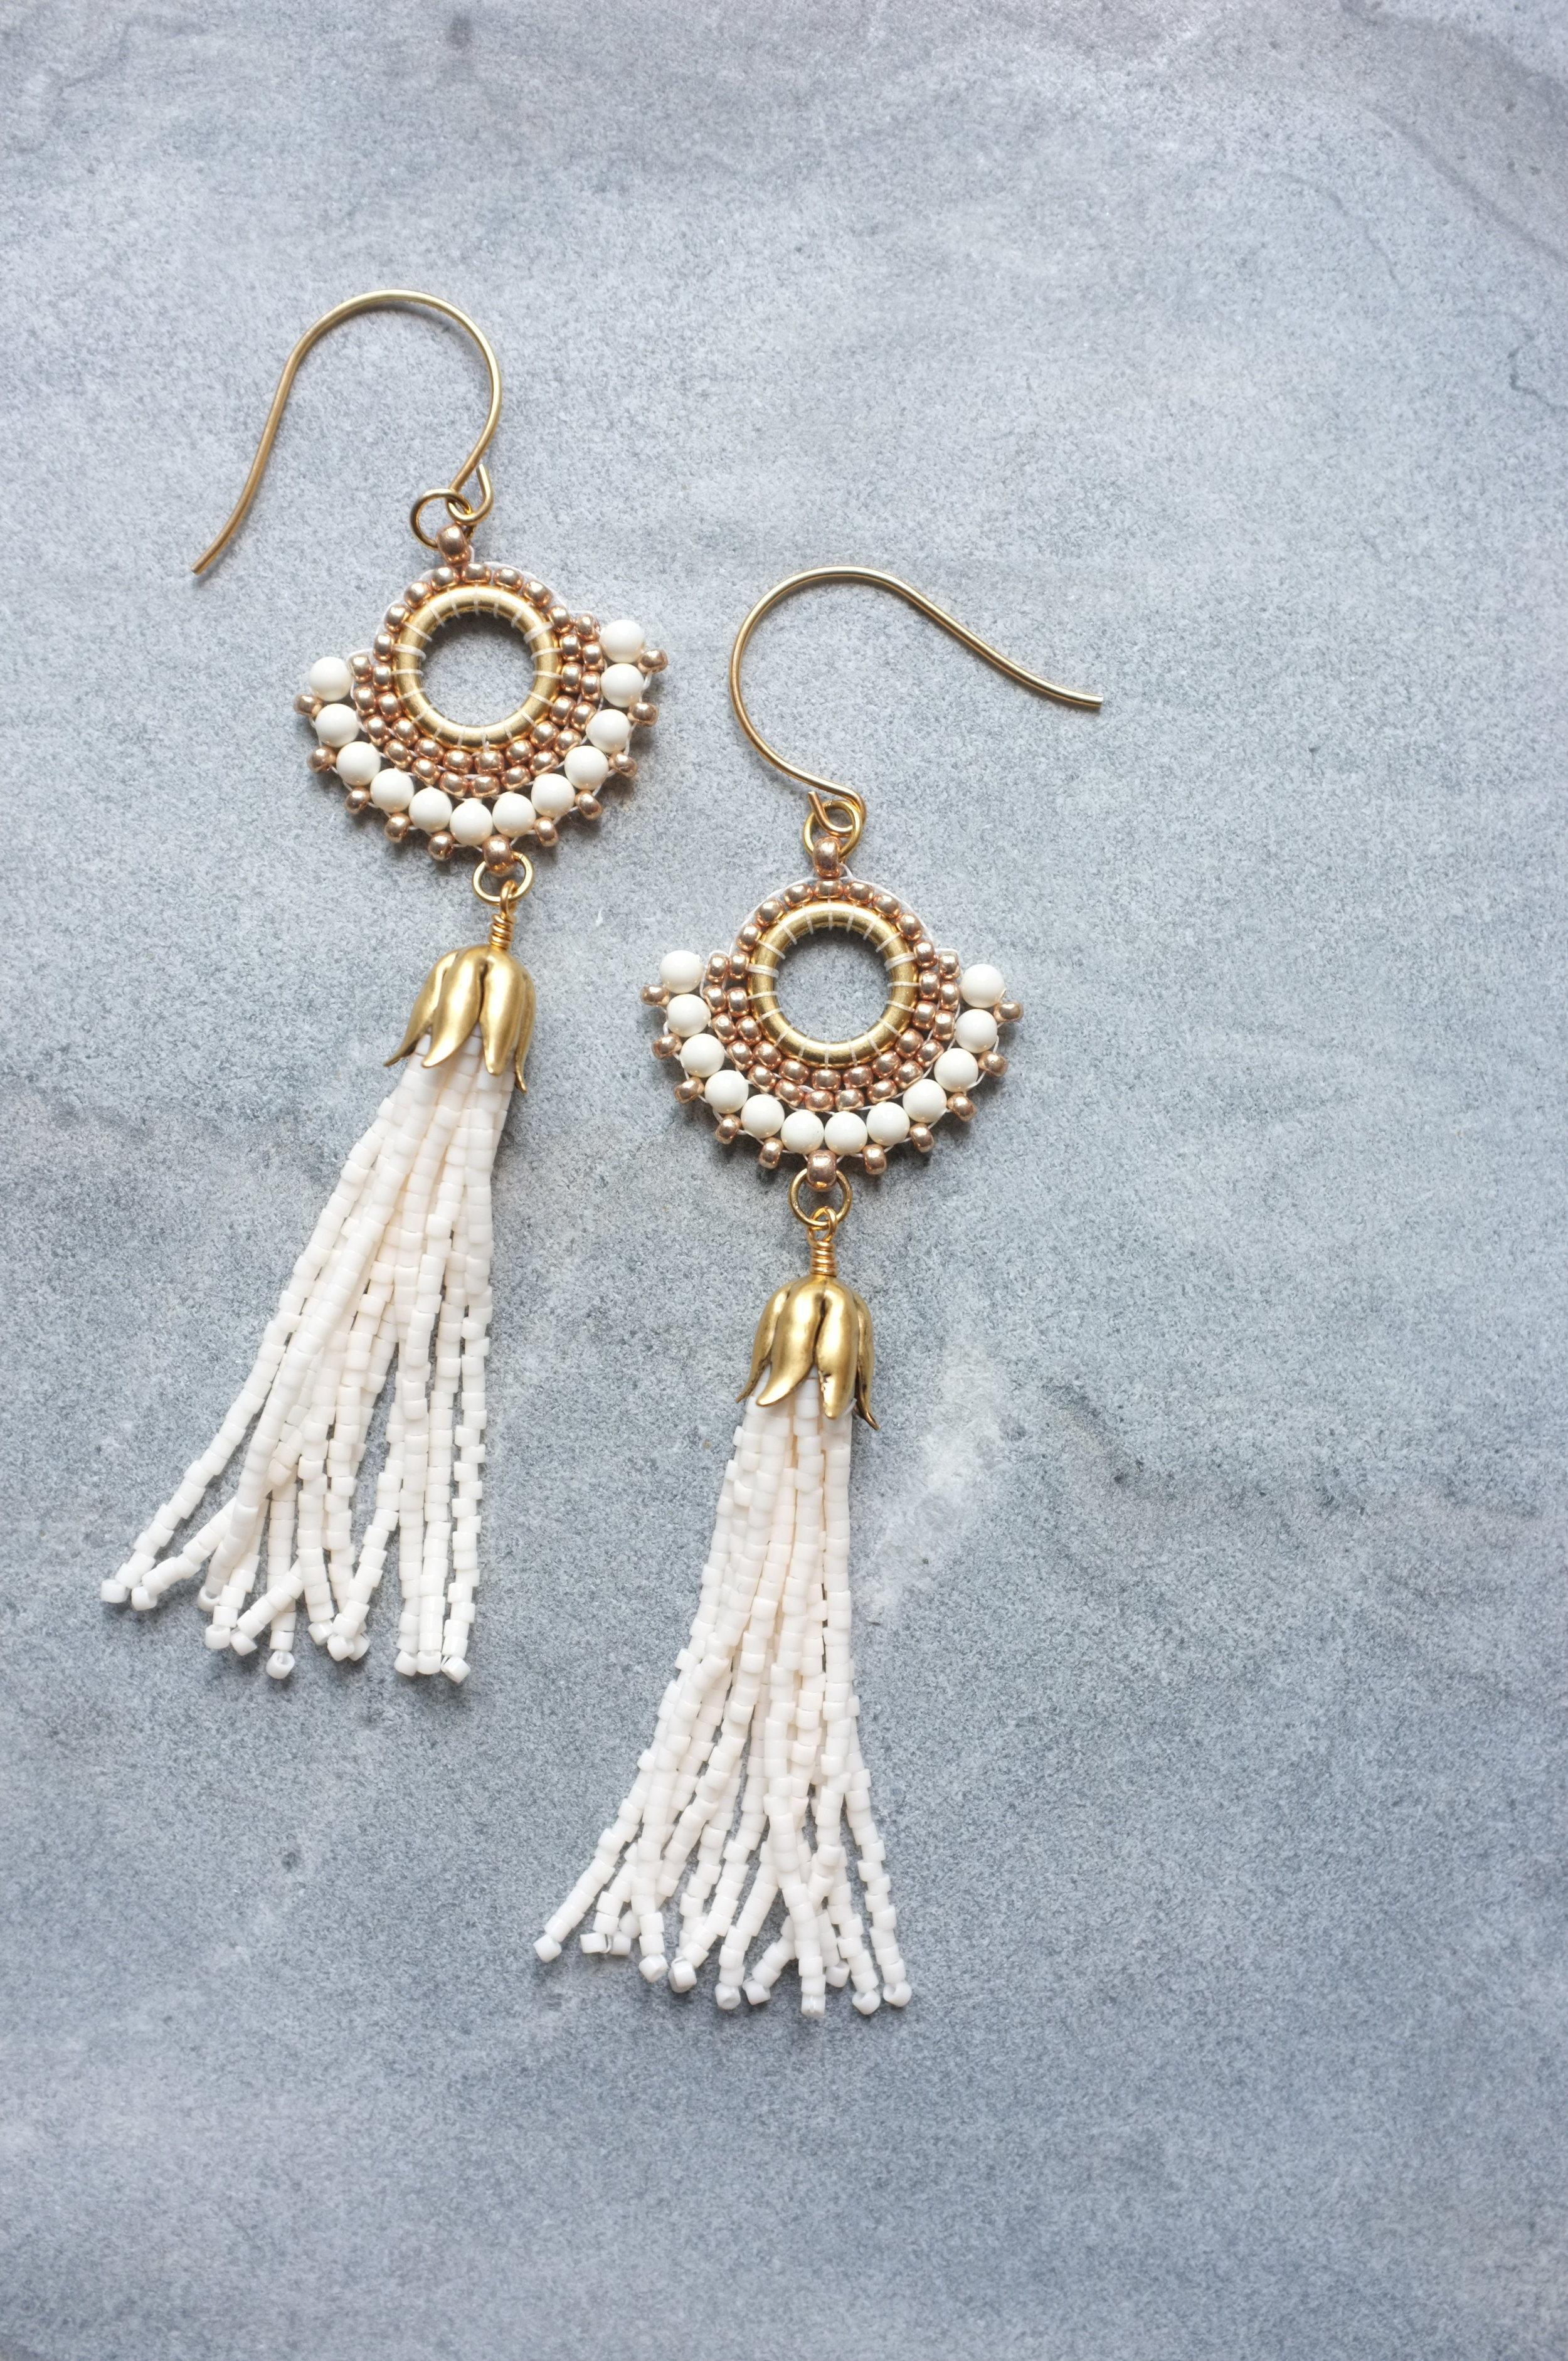 Earring Love - petite or statement